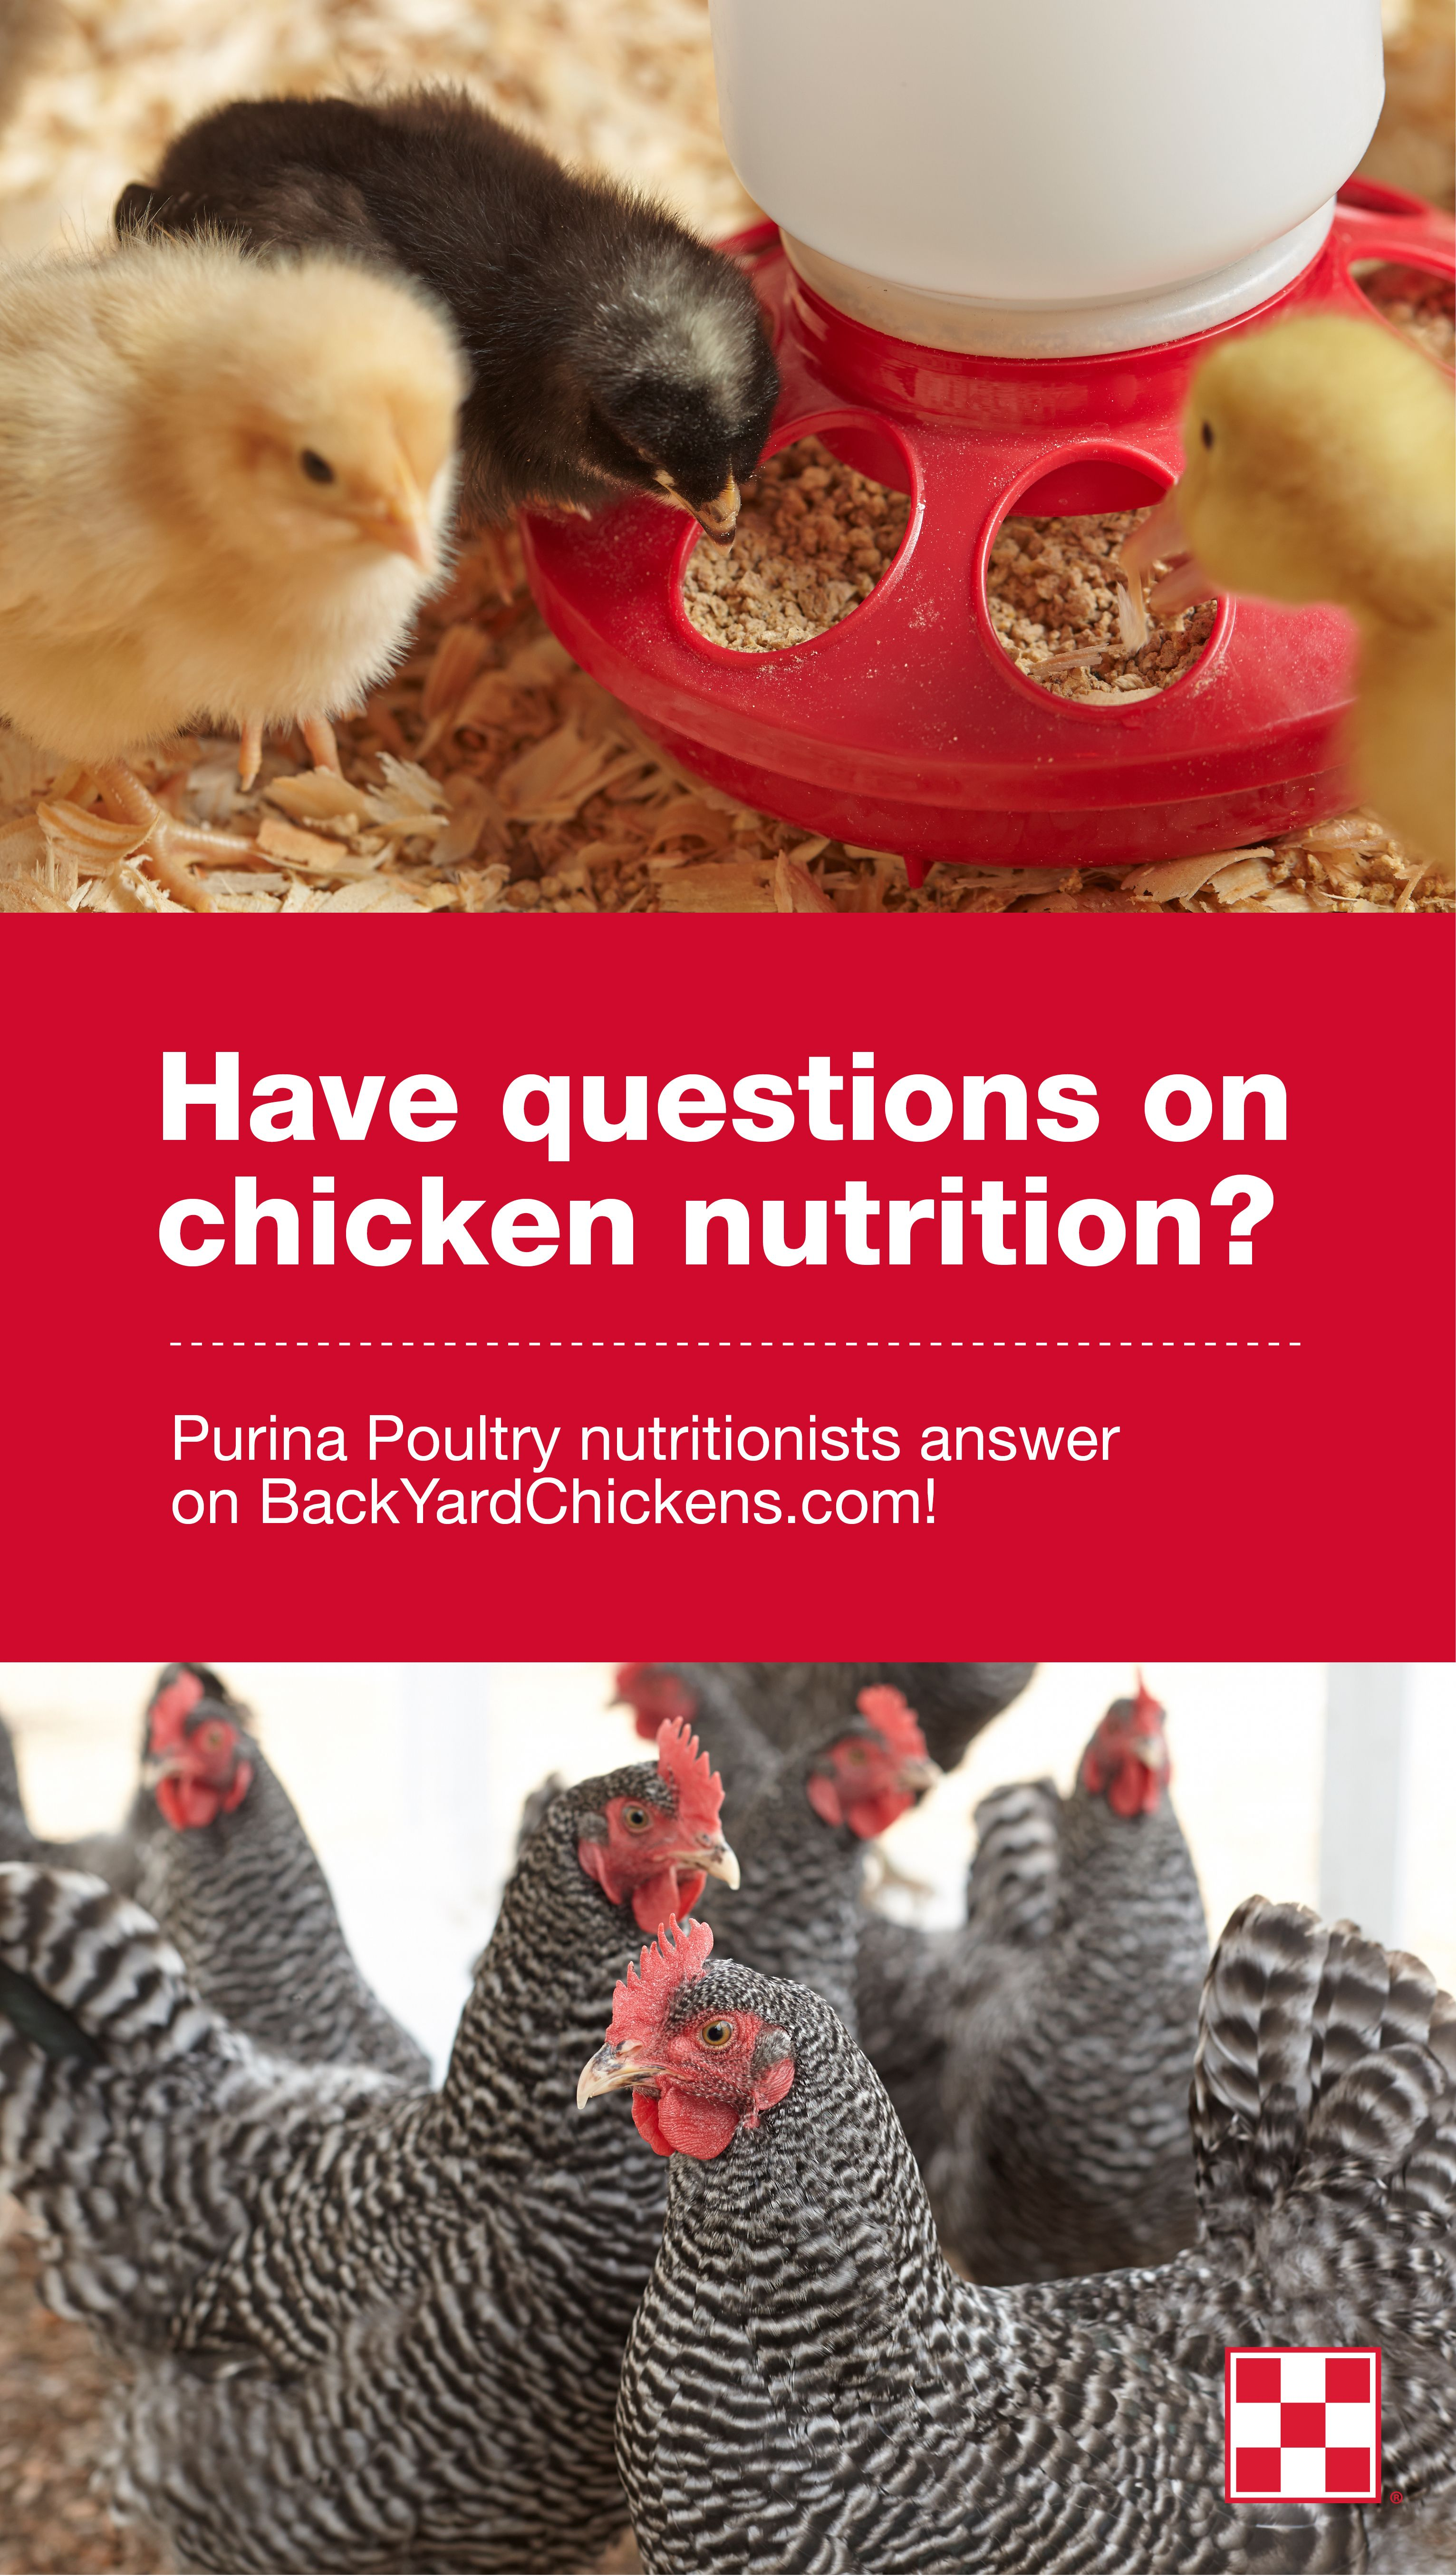 Have Questions About What To Feed Backyard Chickens? Purina Poultry  Nutritionists Answer Questions On The